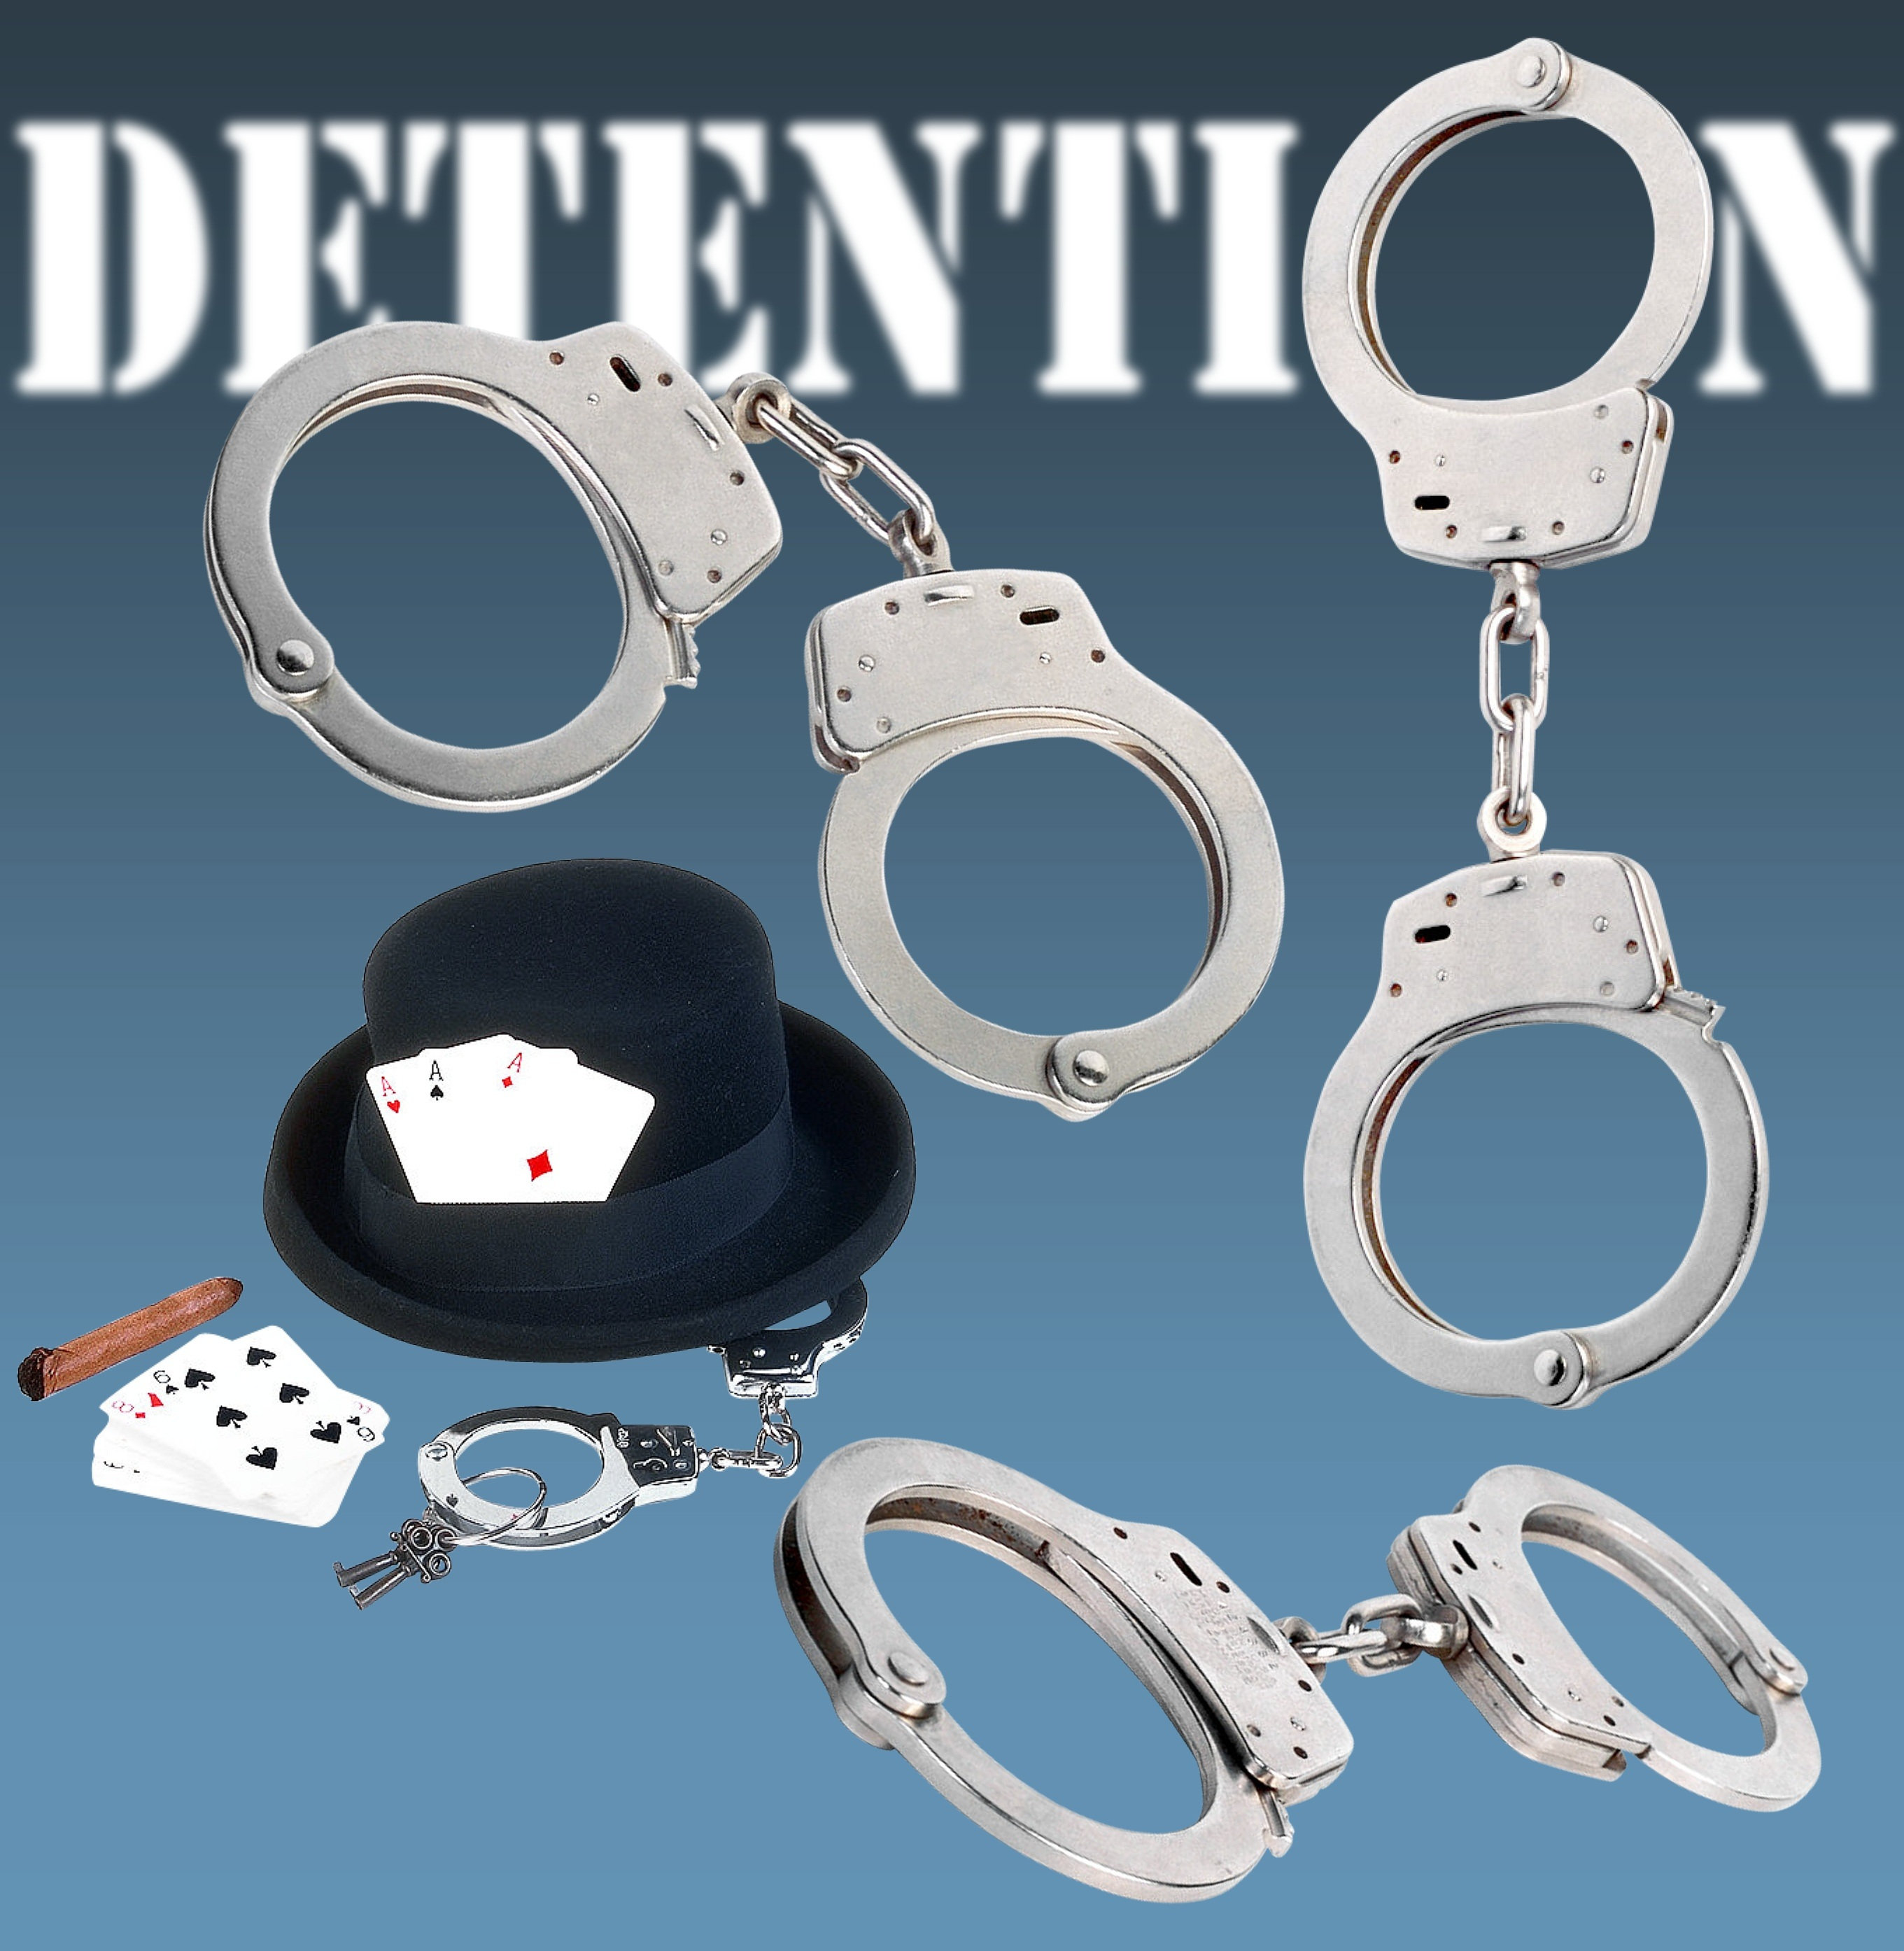 Detention Handcuffs, Card, Cuff, Detention, Handcuff, HQ Photo